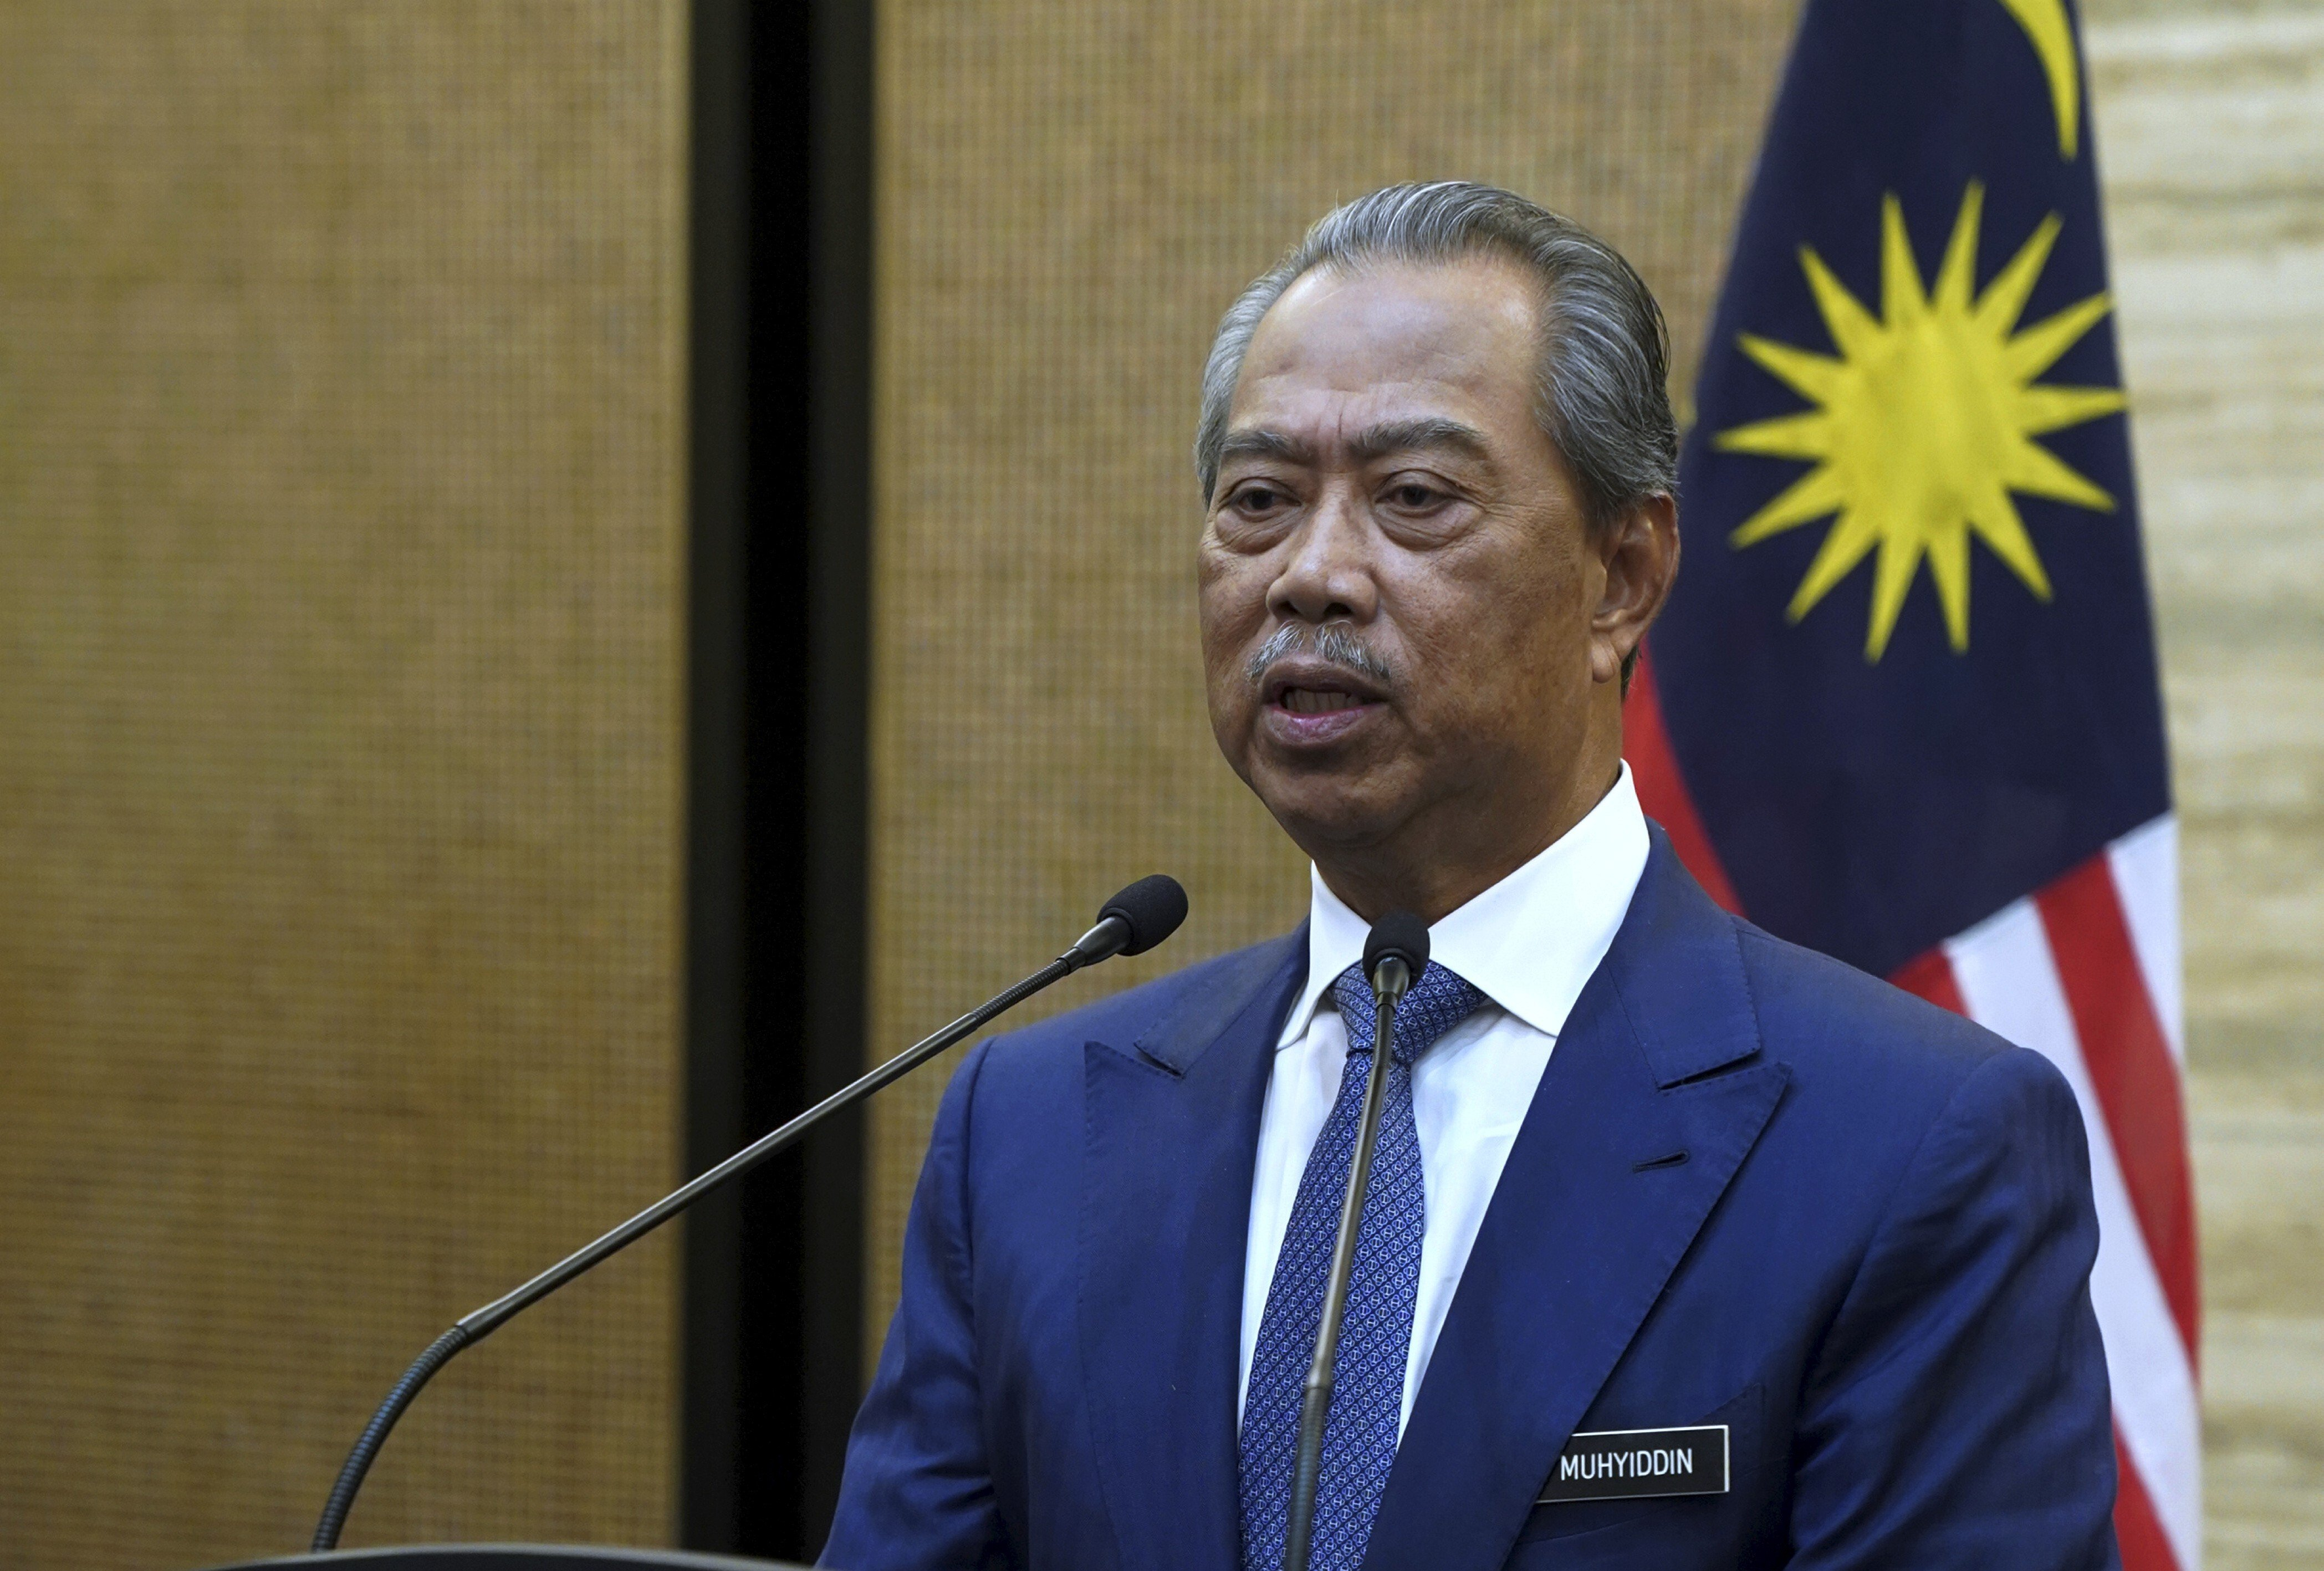 As dust settles in Malaysia, Muhyiddin Yassin must work to instil public confidence | South China Morning Post